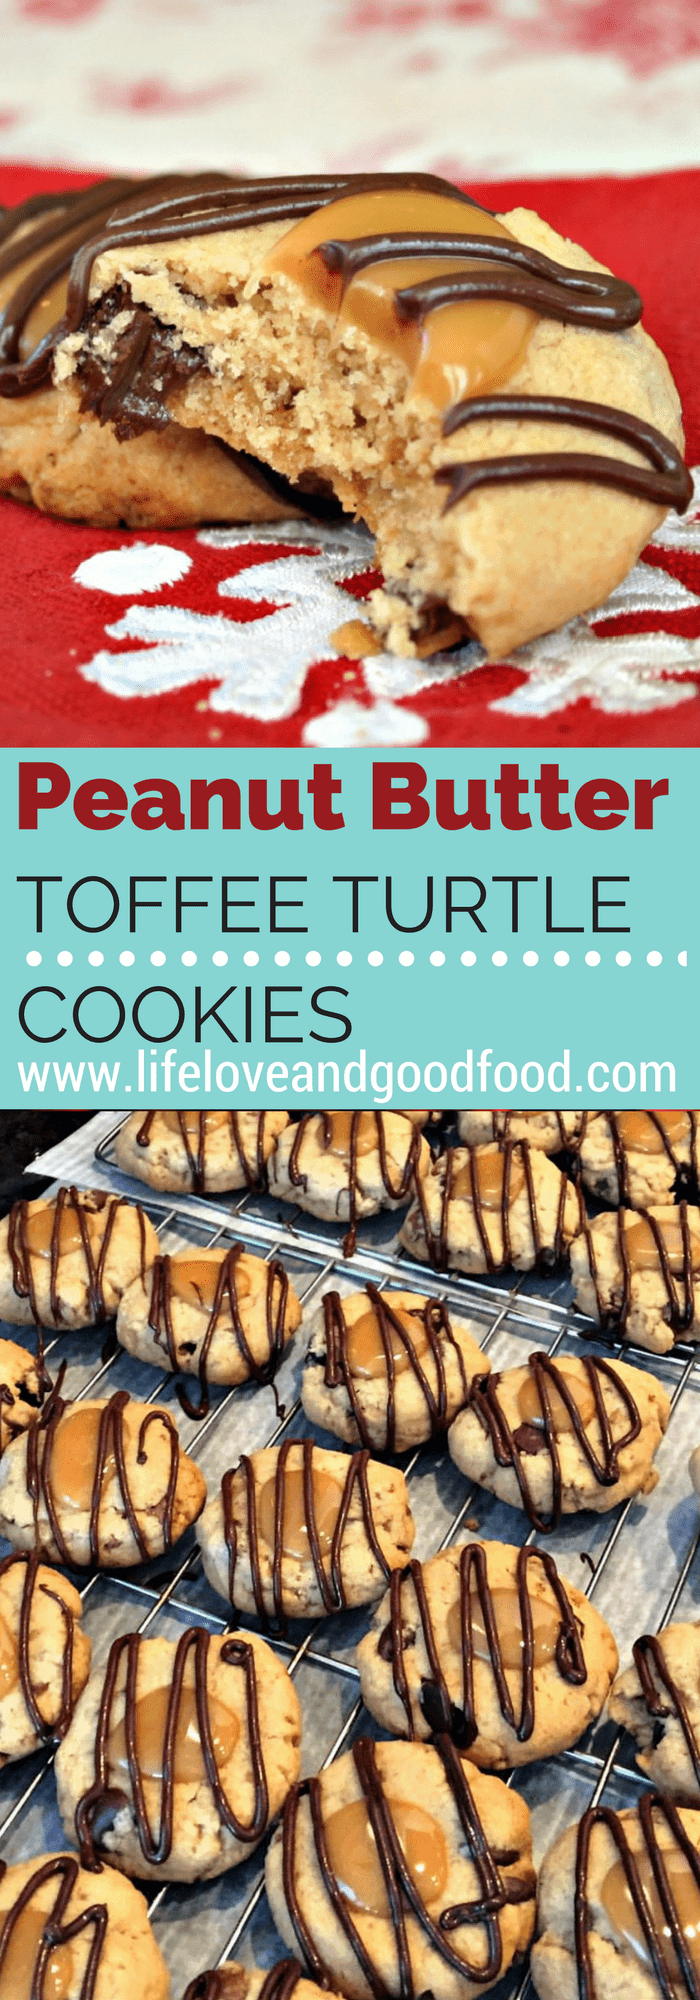 A close up of a Peanut Butter Toffee Turtle Cookie